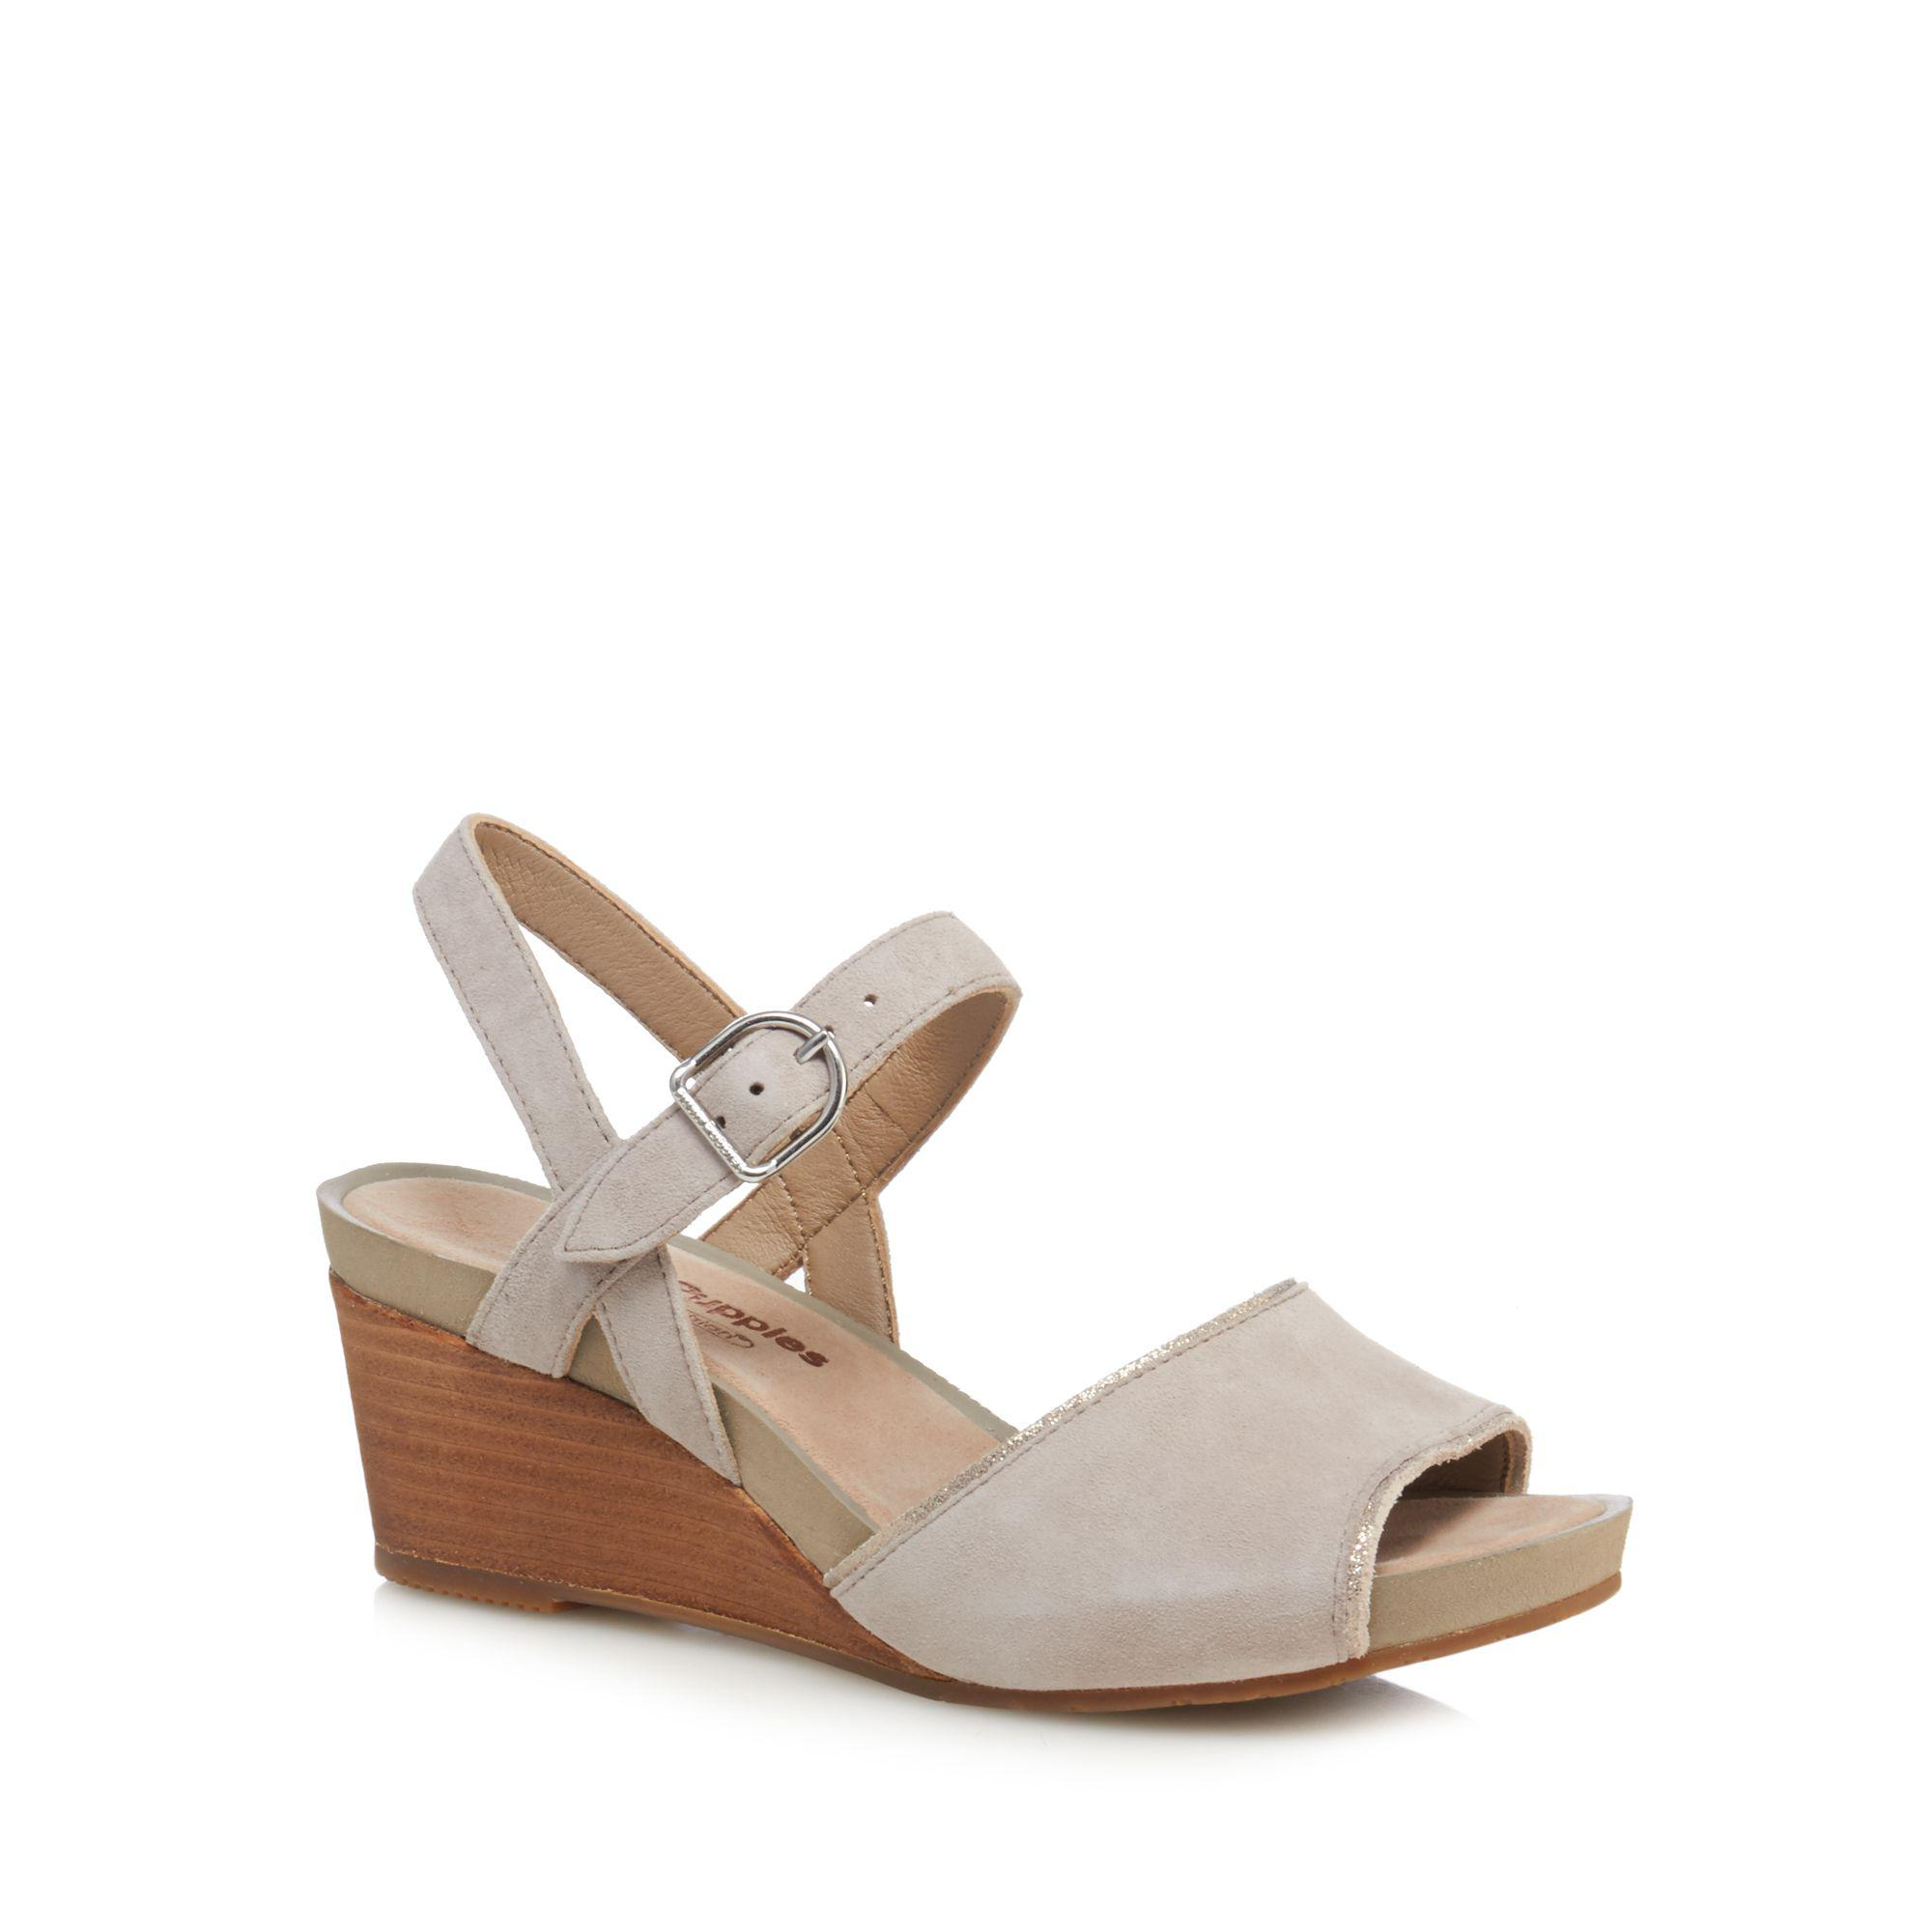 Light grey suede 'Cassale' mid wedge heel ankle strap sandals sale tumblr excellent cheap online new cheap price footlocker finishline sale online pick a best cheap online M6imd